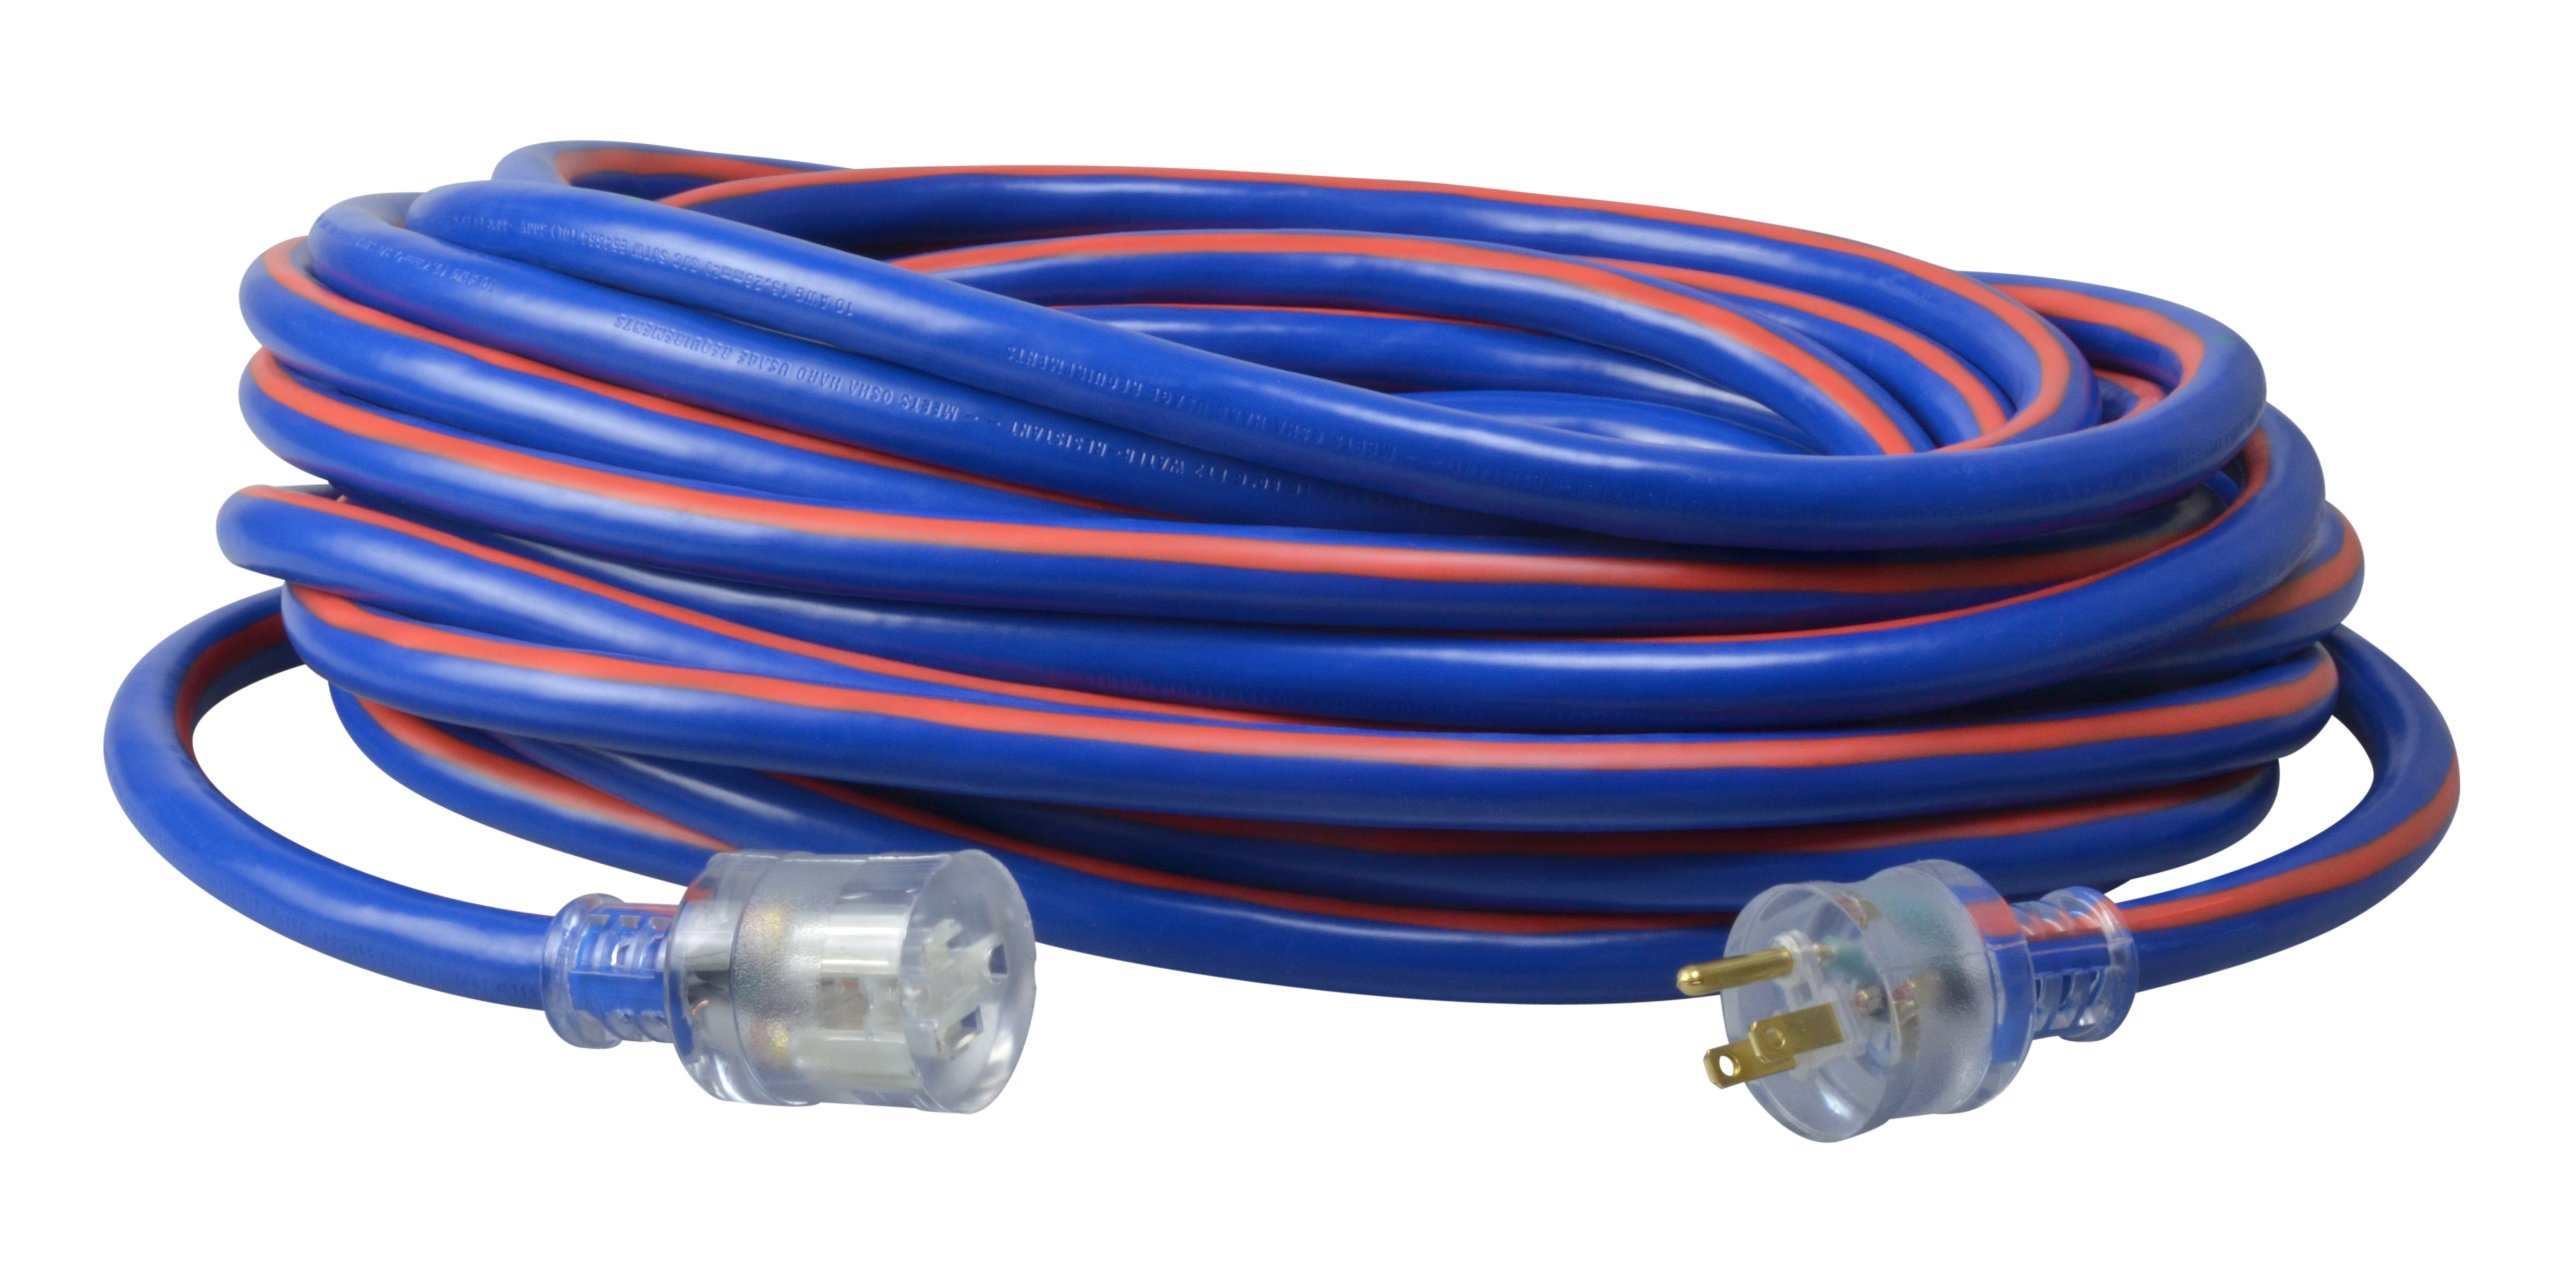 Coleman Cable 02649-00-64 100-Feet 10/3-Wire Gauge Neon Stripe Outdoor Extension Cord with Lighted Ends, Blue/Red